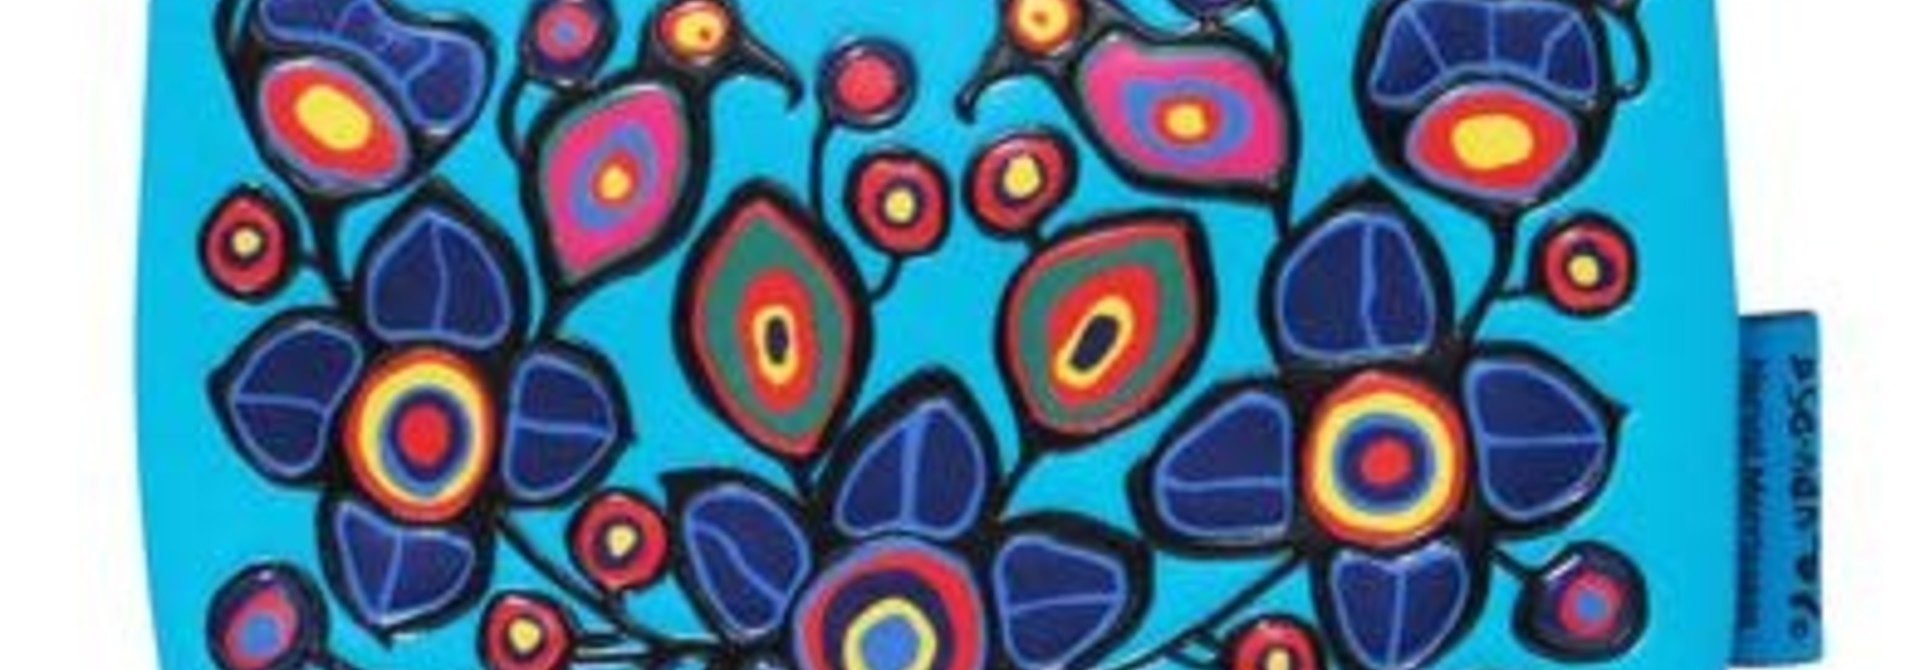 Coin Purse - Flowers & Birds by Norval Morrisseau